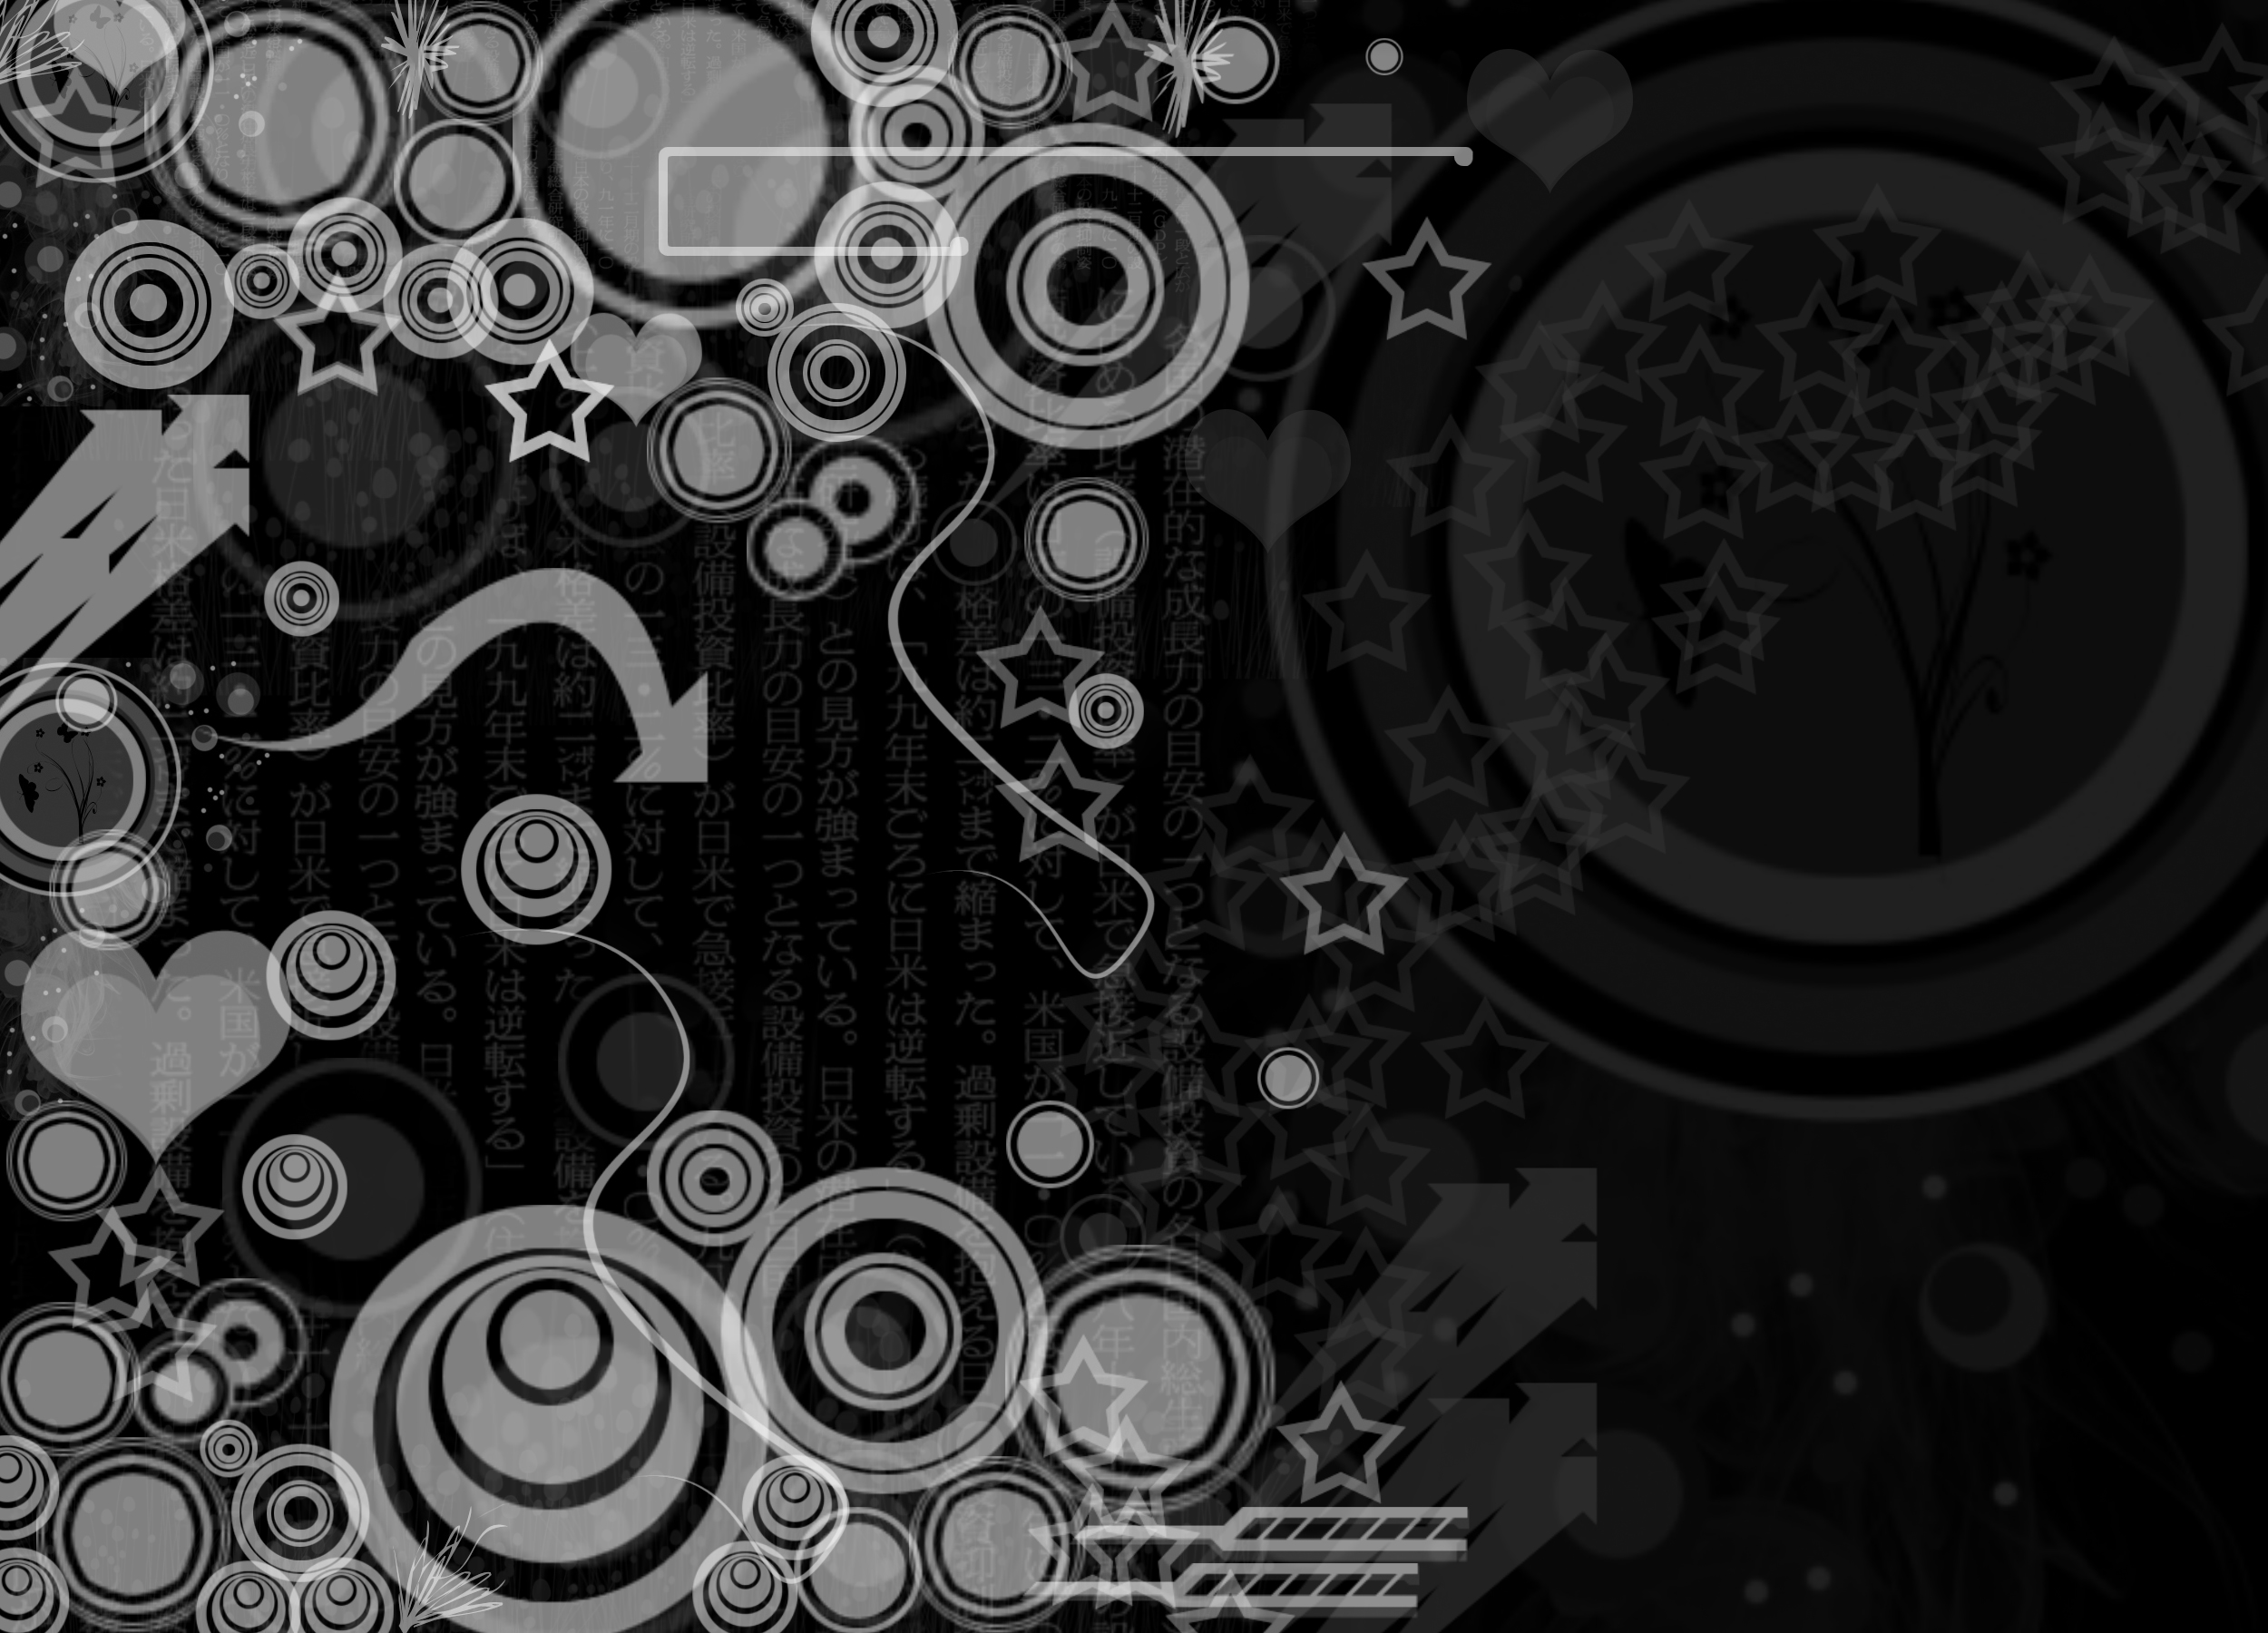 the best black and white desktop wallpapers that you can set up on 2500x1800